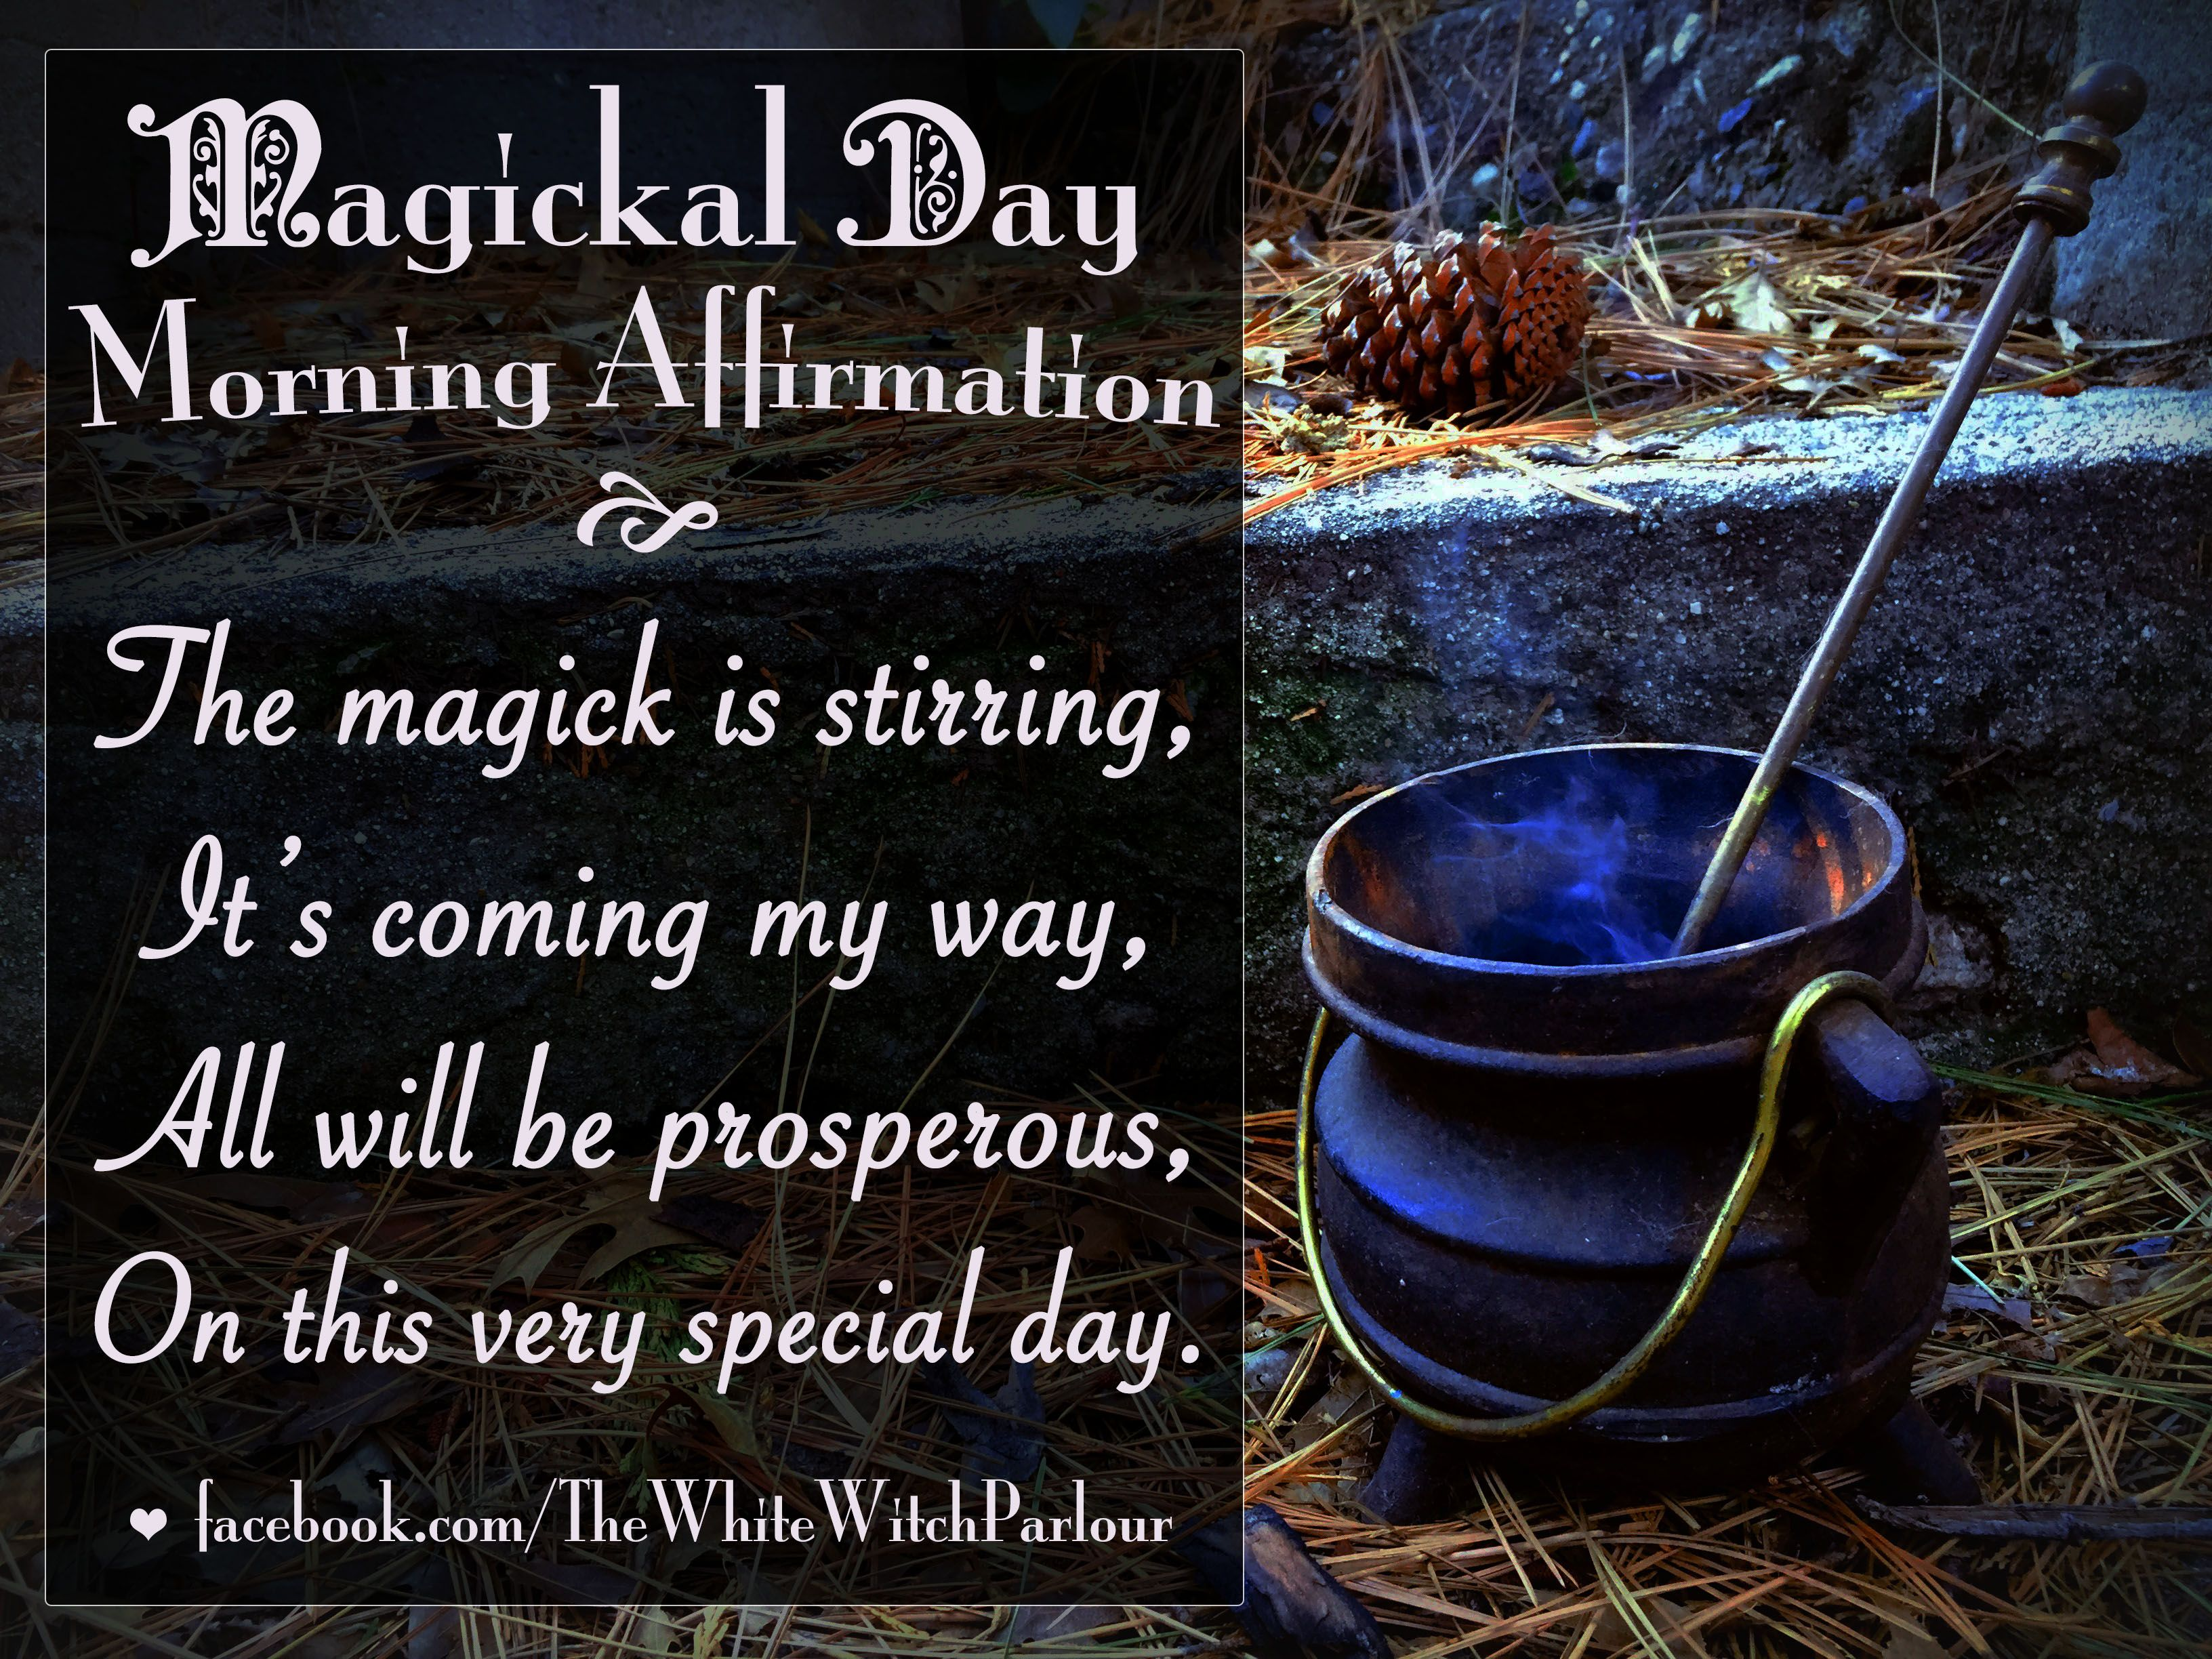 affirmation, mantra, prayer for a magickal blessed day, cauldron